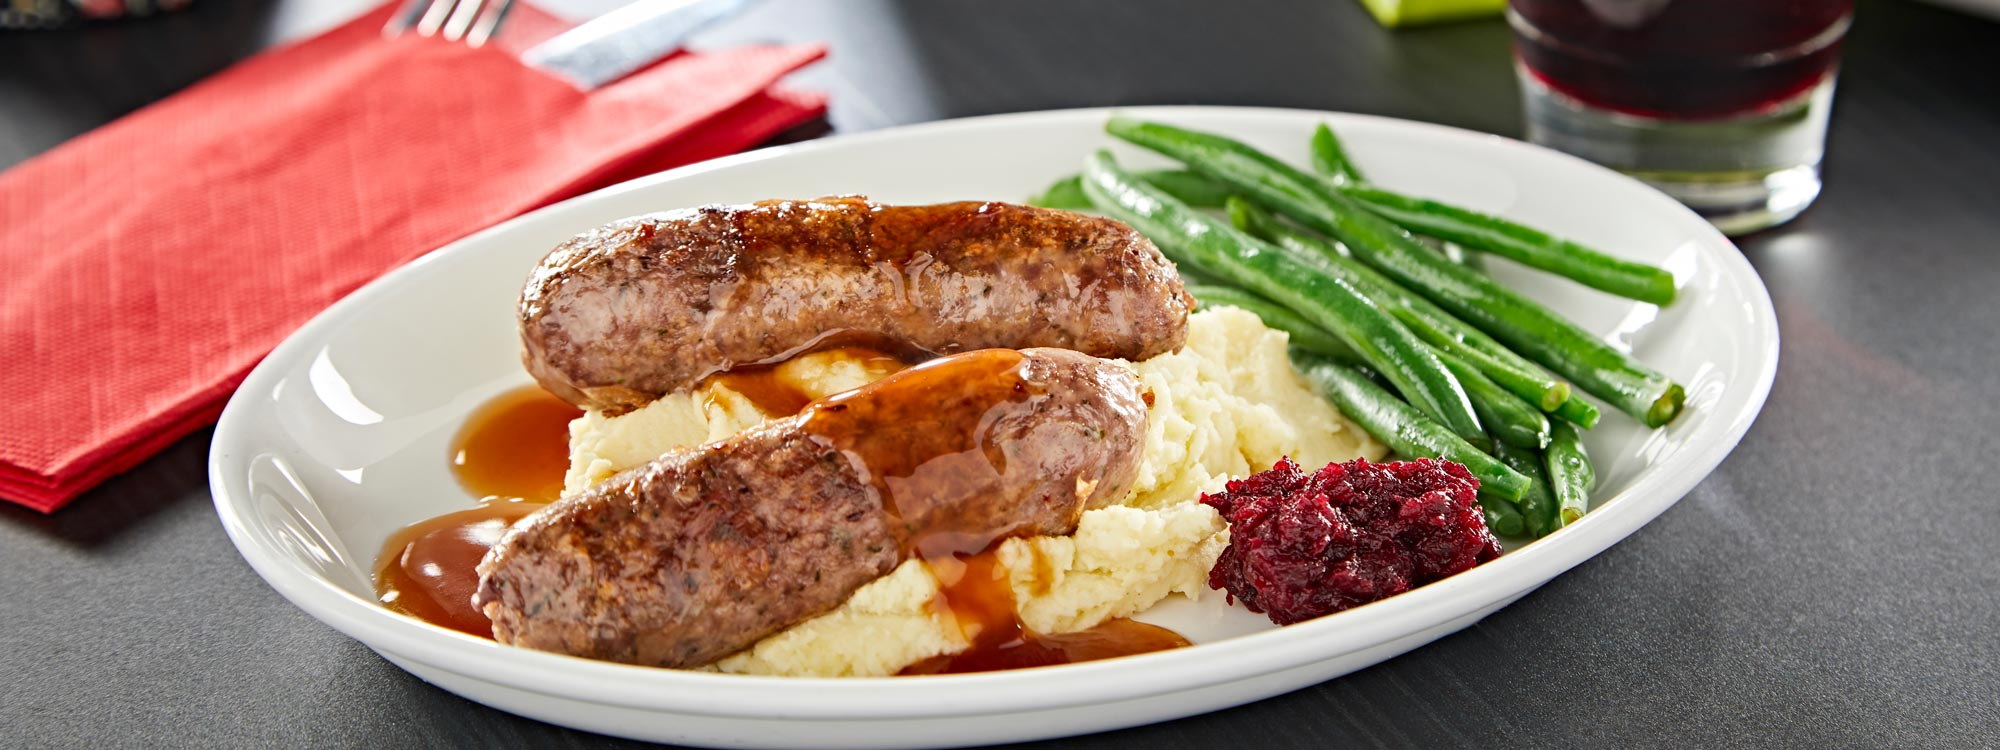 Venison sausages, mash and green beans LNER First Class Menu